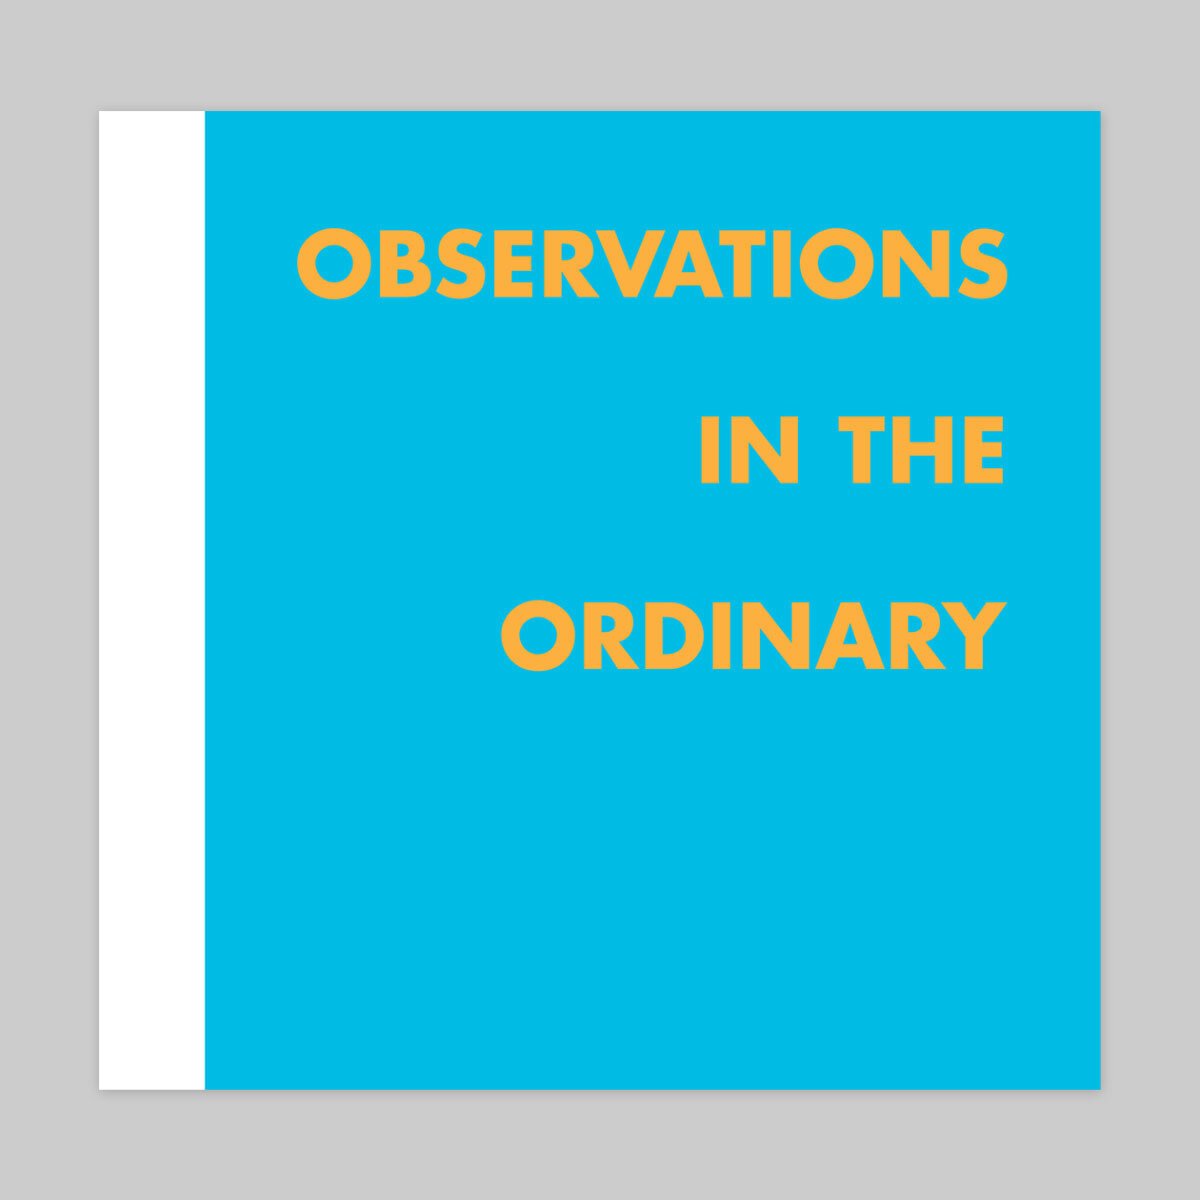 Observations-in-the-Ordinary-Cover-Mockup.jpg